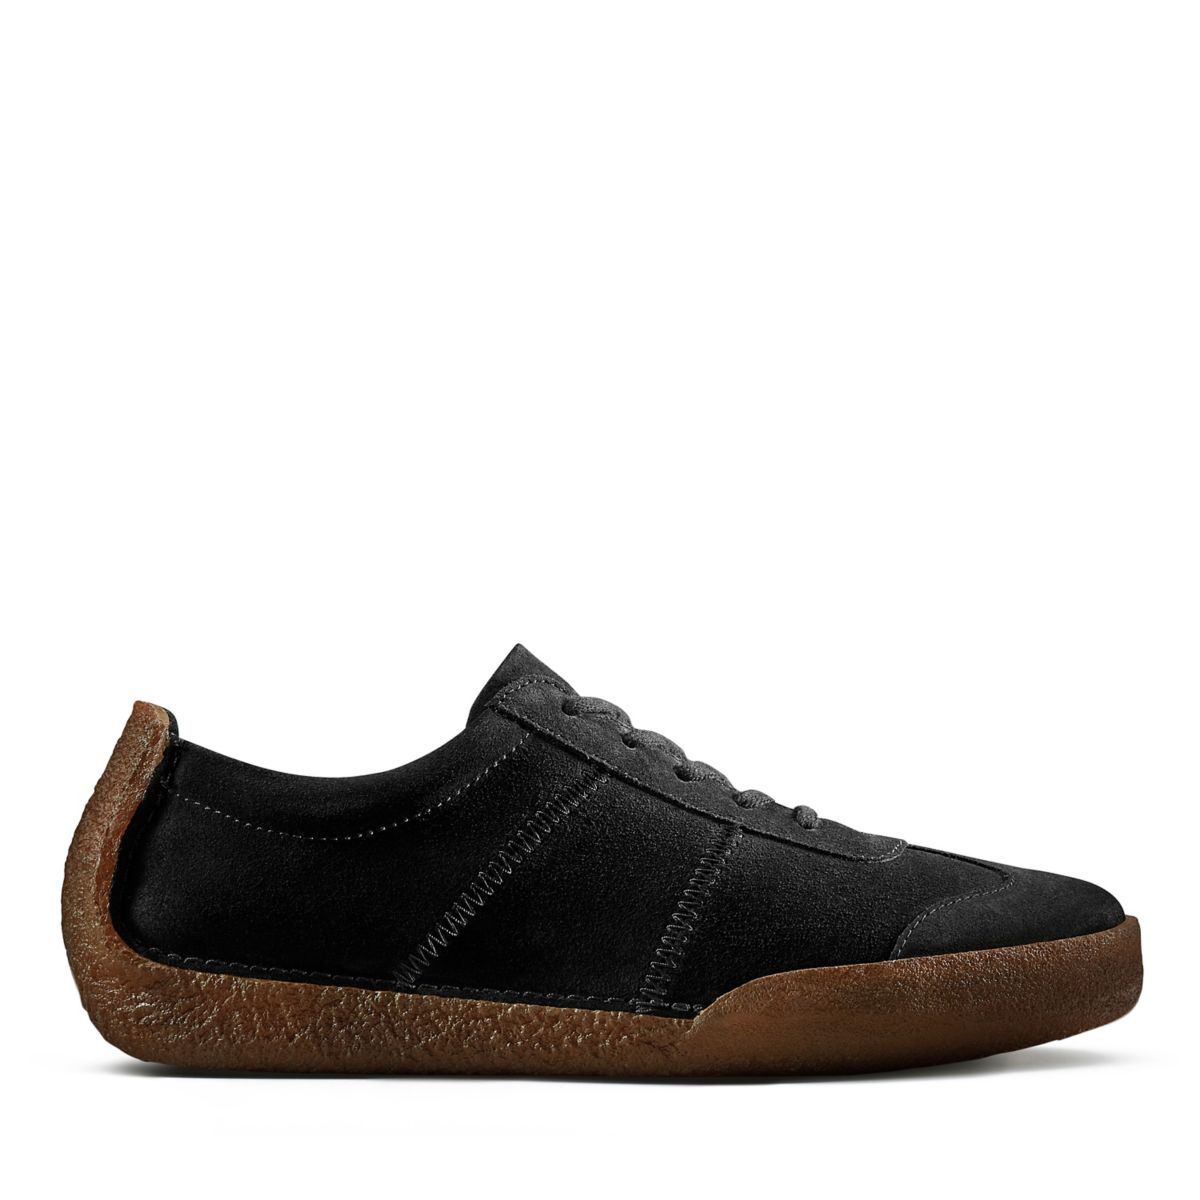 clarks black women dating site Clarks sandals define breezy summer style and look celebrate the warm weather with comfortable and stylish women's sandals and flip black leather 5 0 50 1.